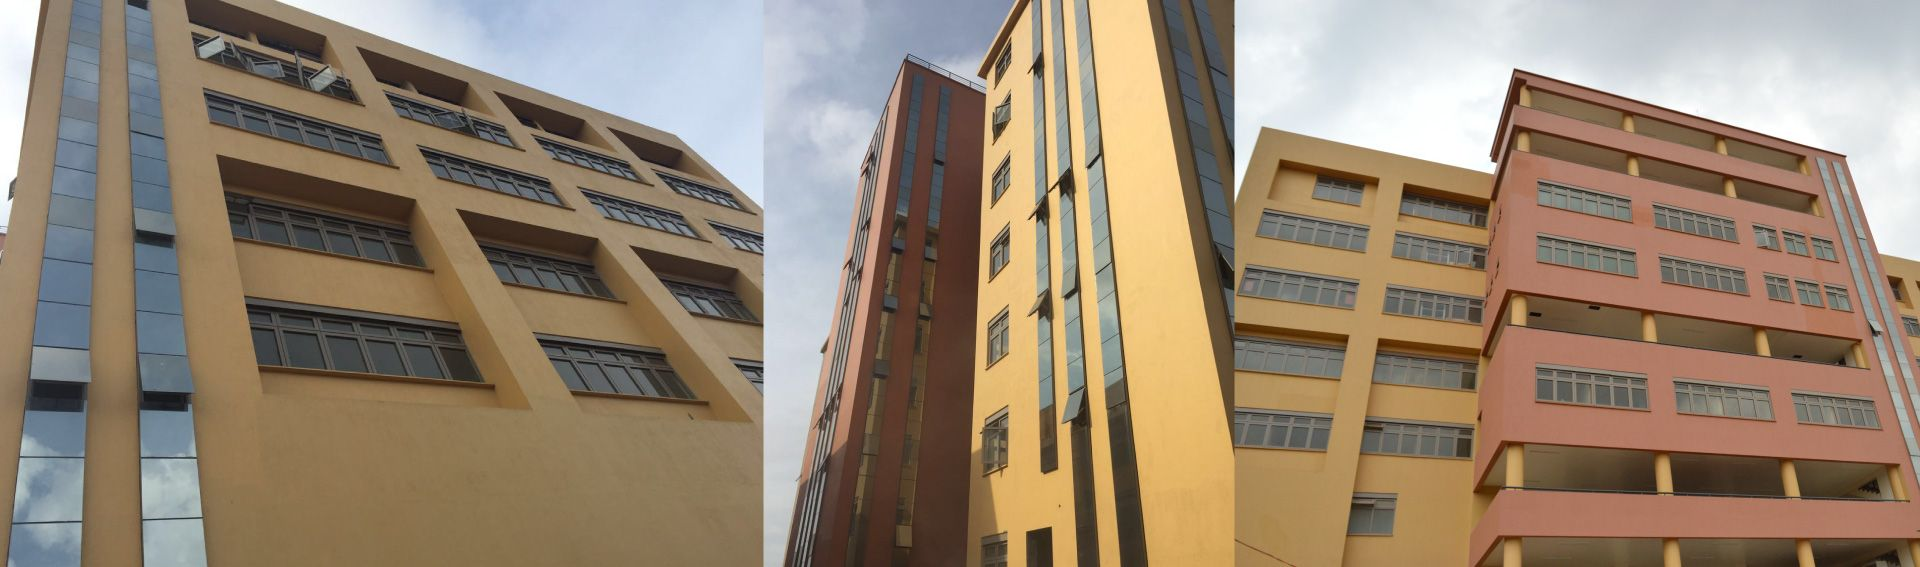 Aluminium products for commercial buildings